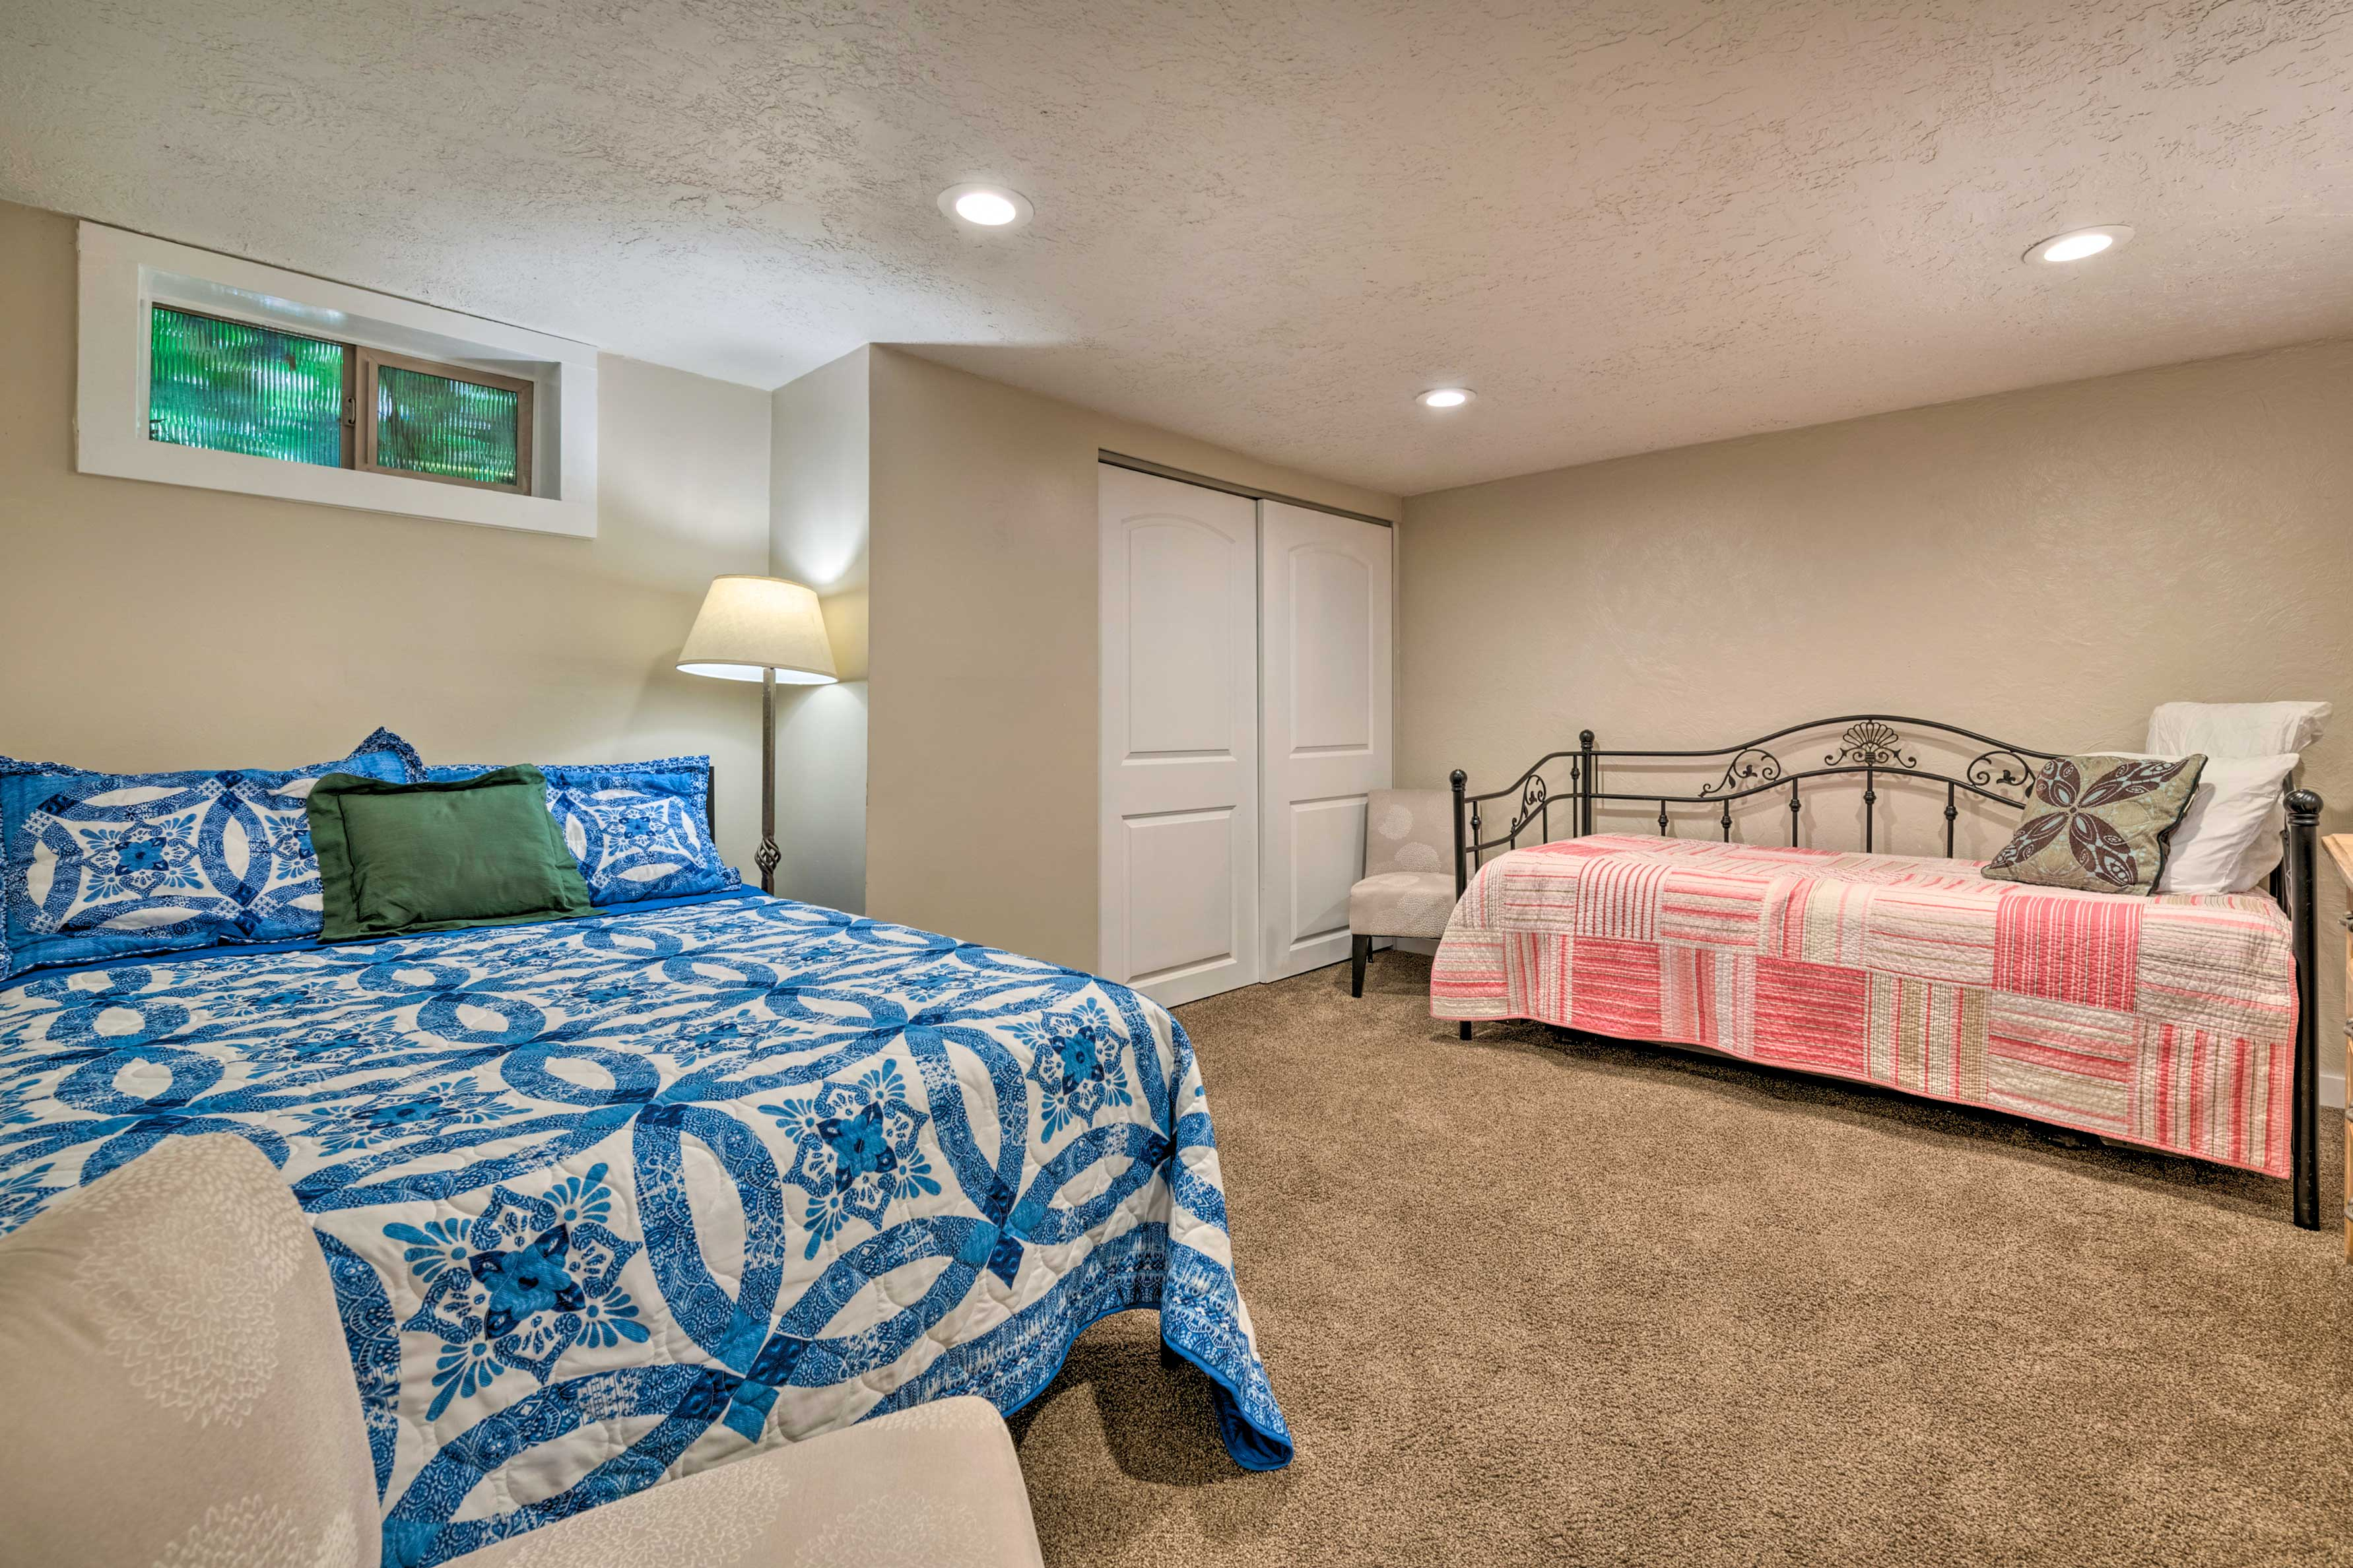 This room offers space for 4.